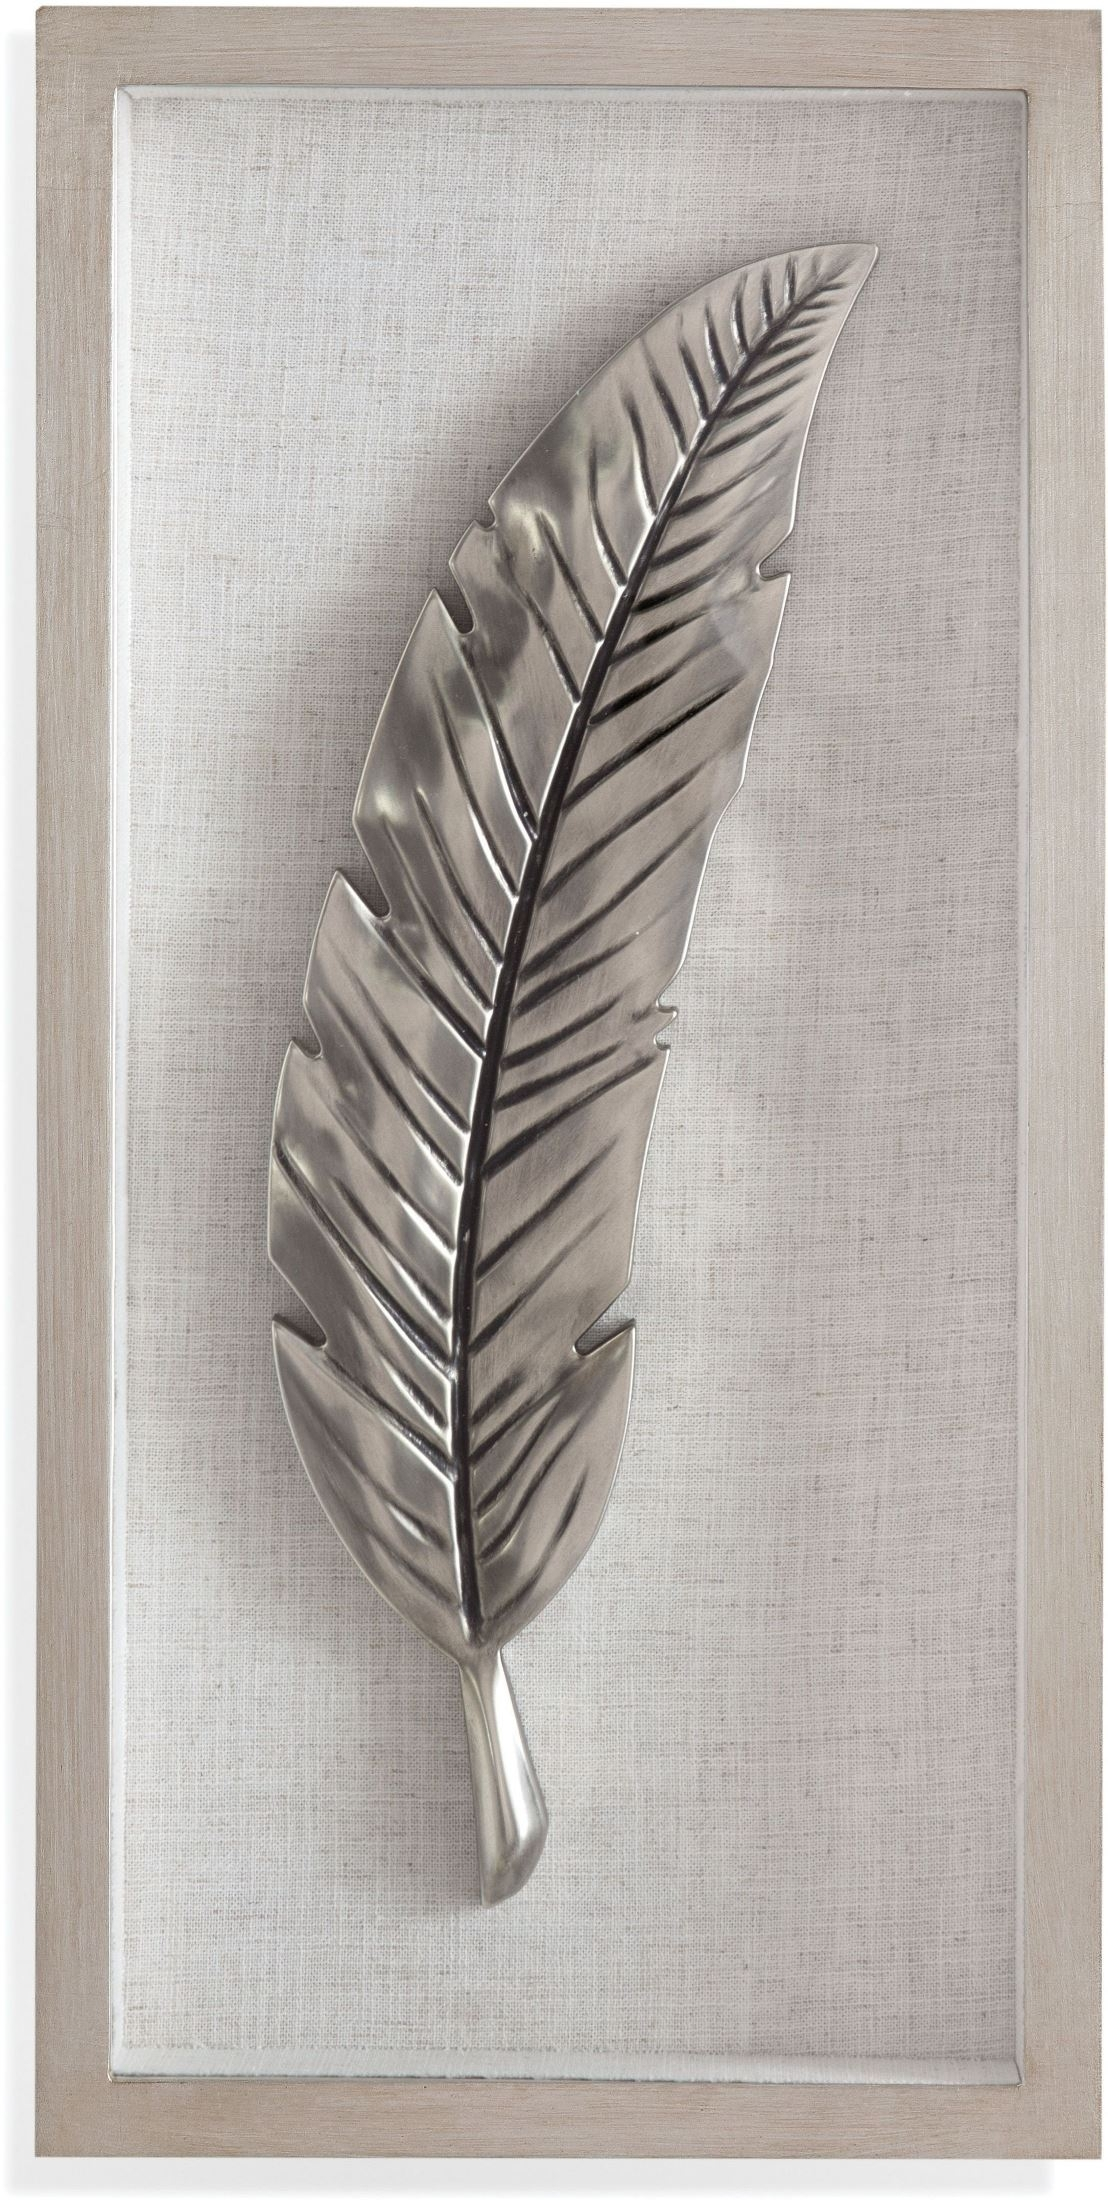 Bassett Mirror Company Silver And Black Feather Wall Art With 2017 Feather Wall Art (View 16 of 20)